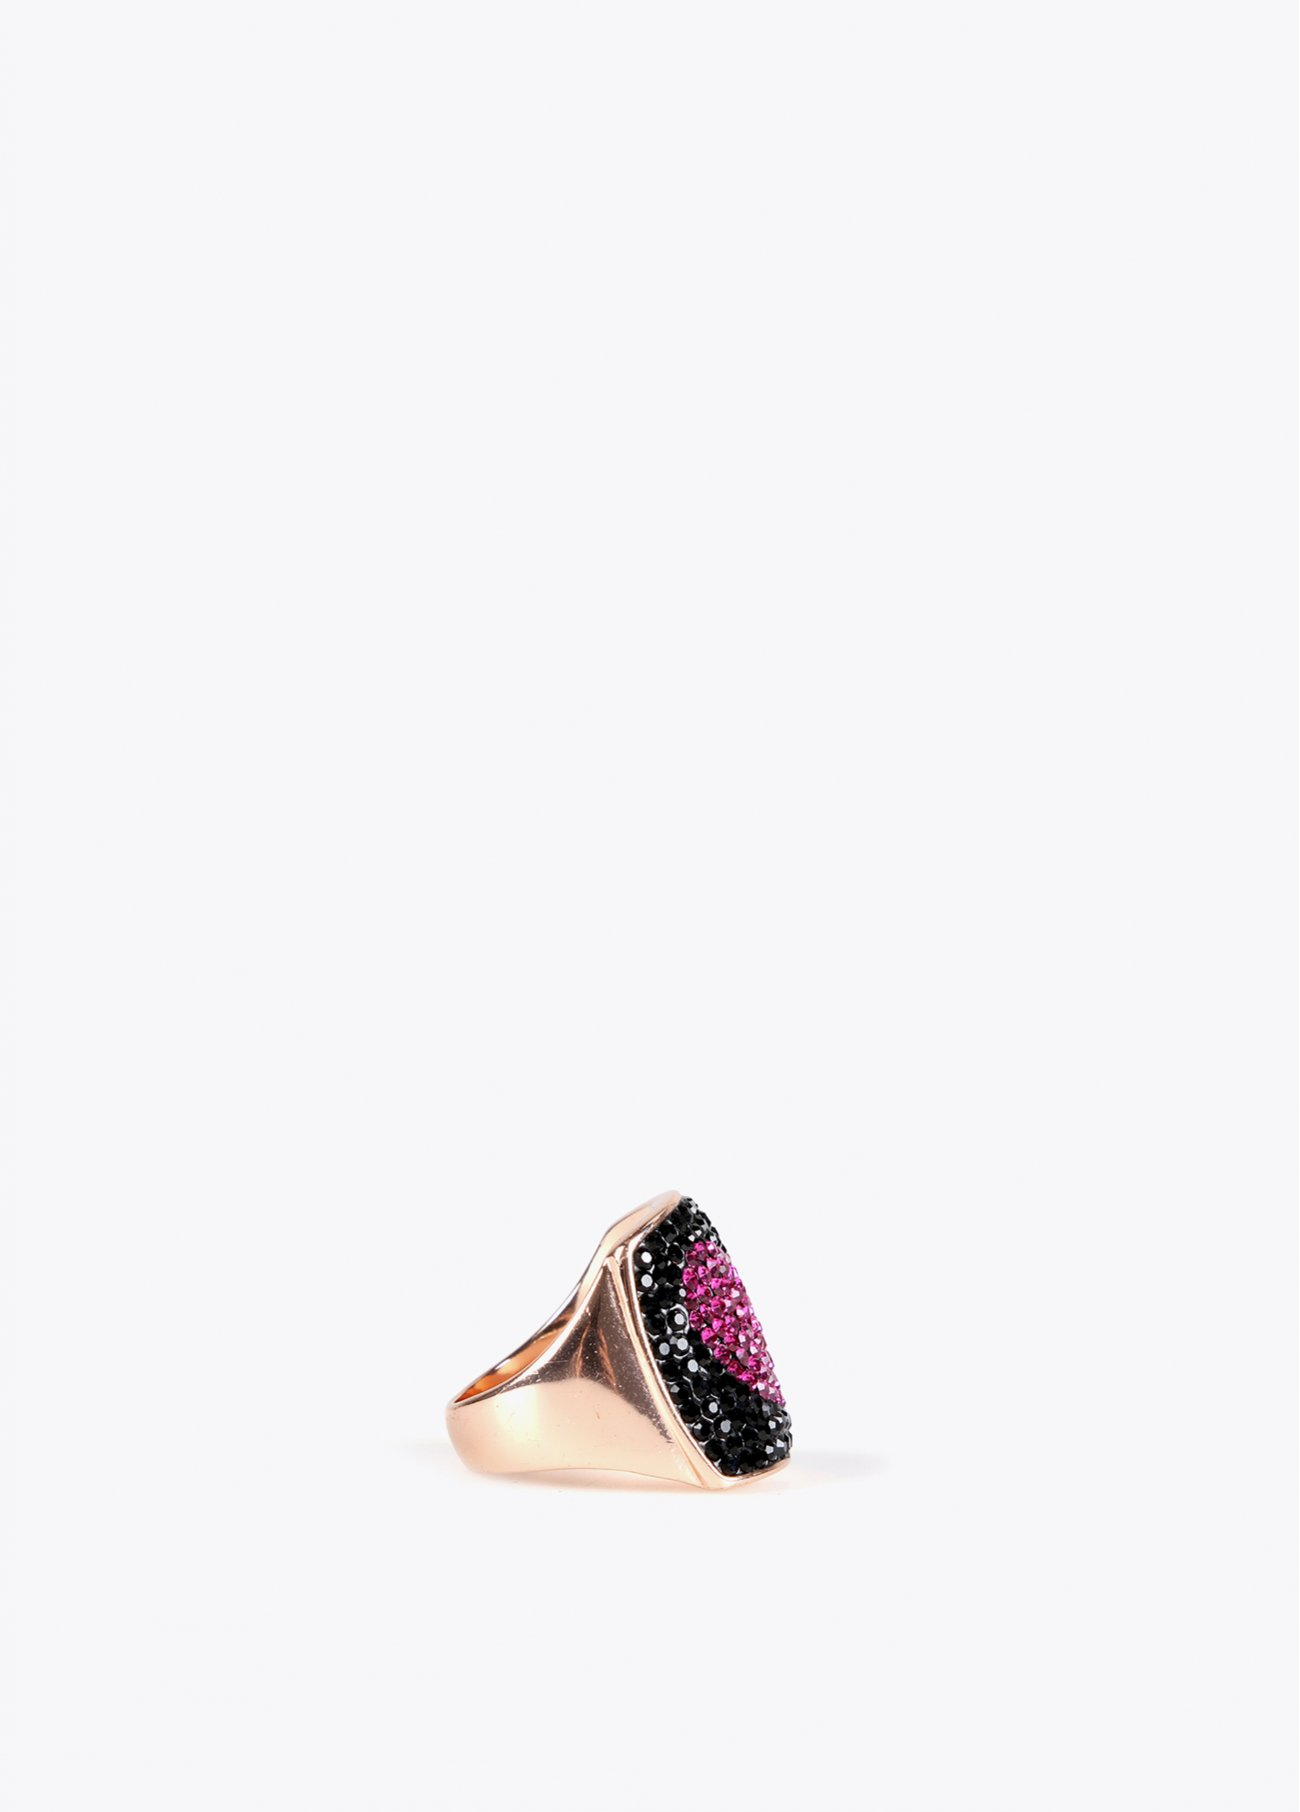 Ring with sparkling fuchsia heart